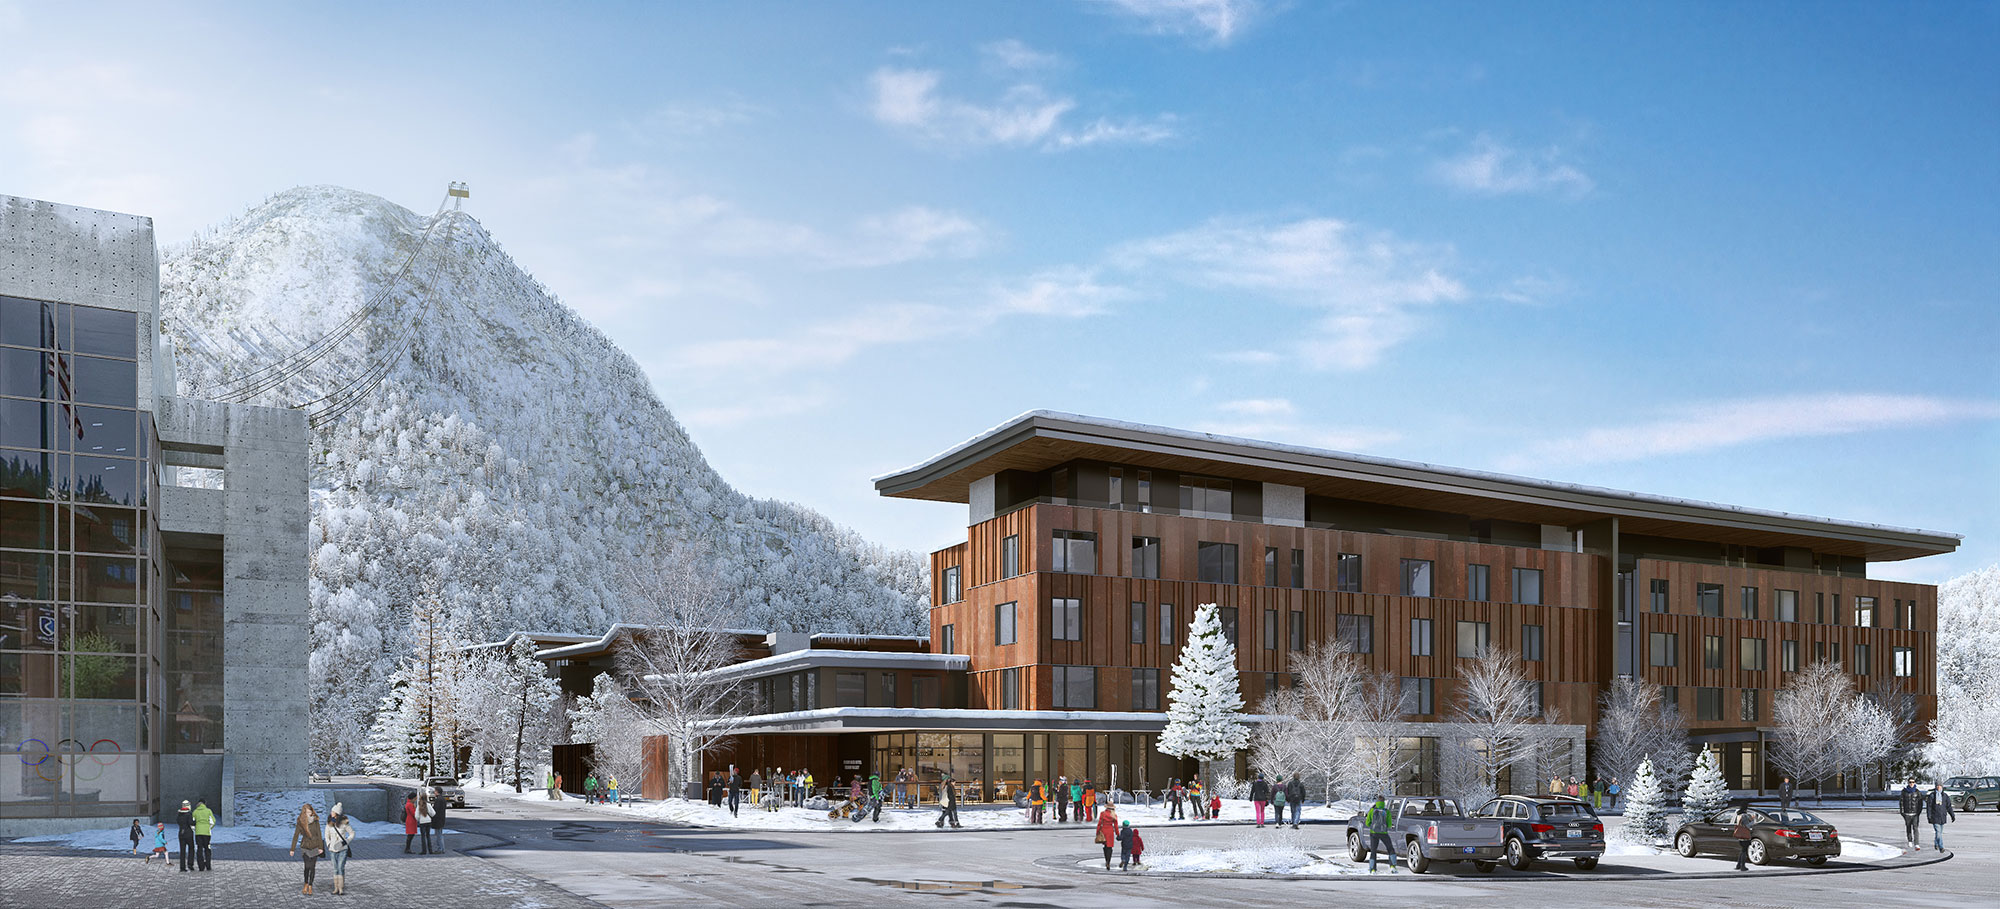 Unique Lifestyle Experience at PlumpJack Squaw Valley Building